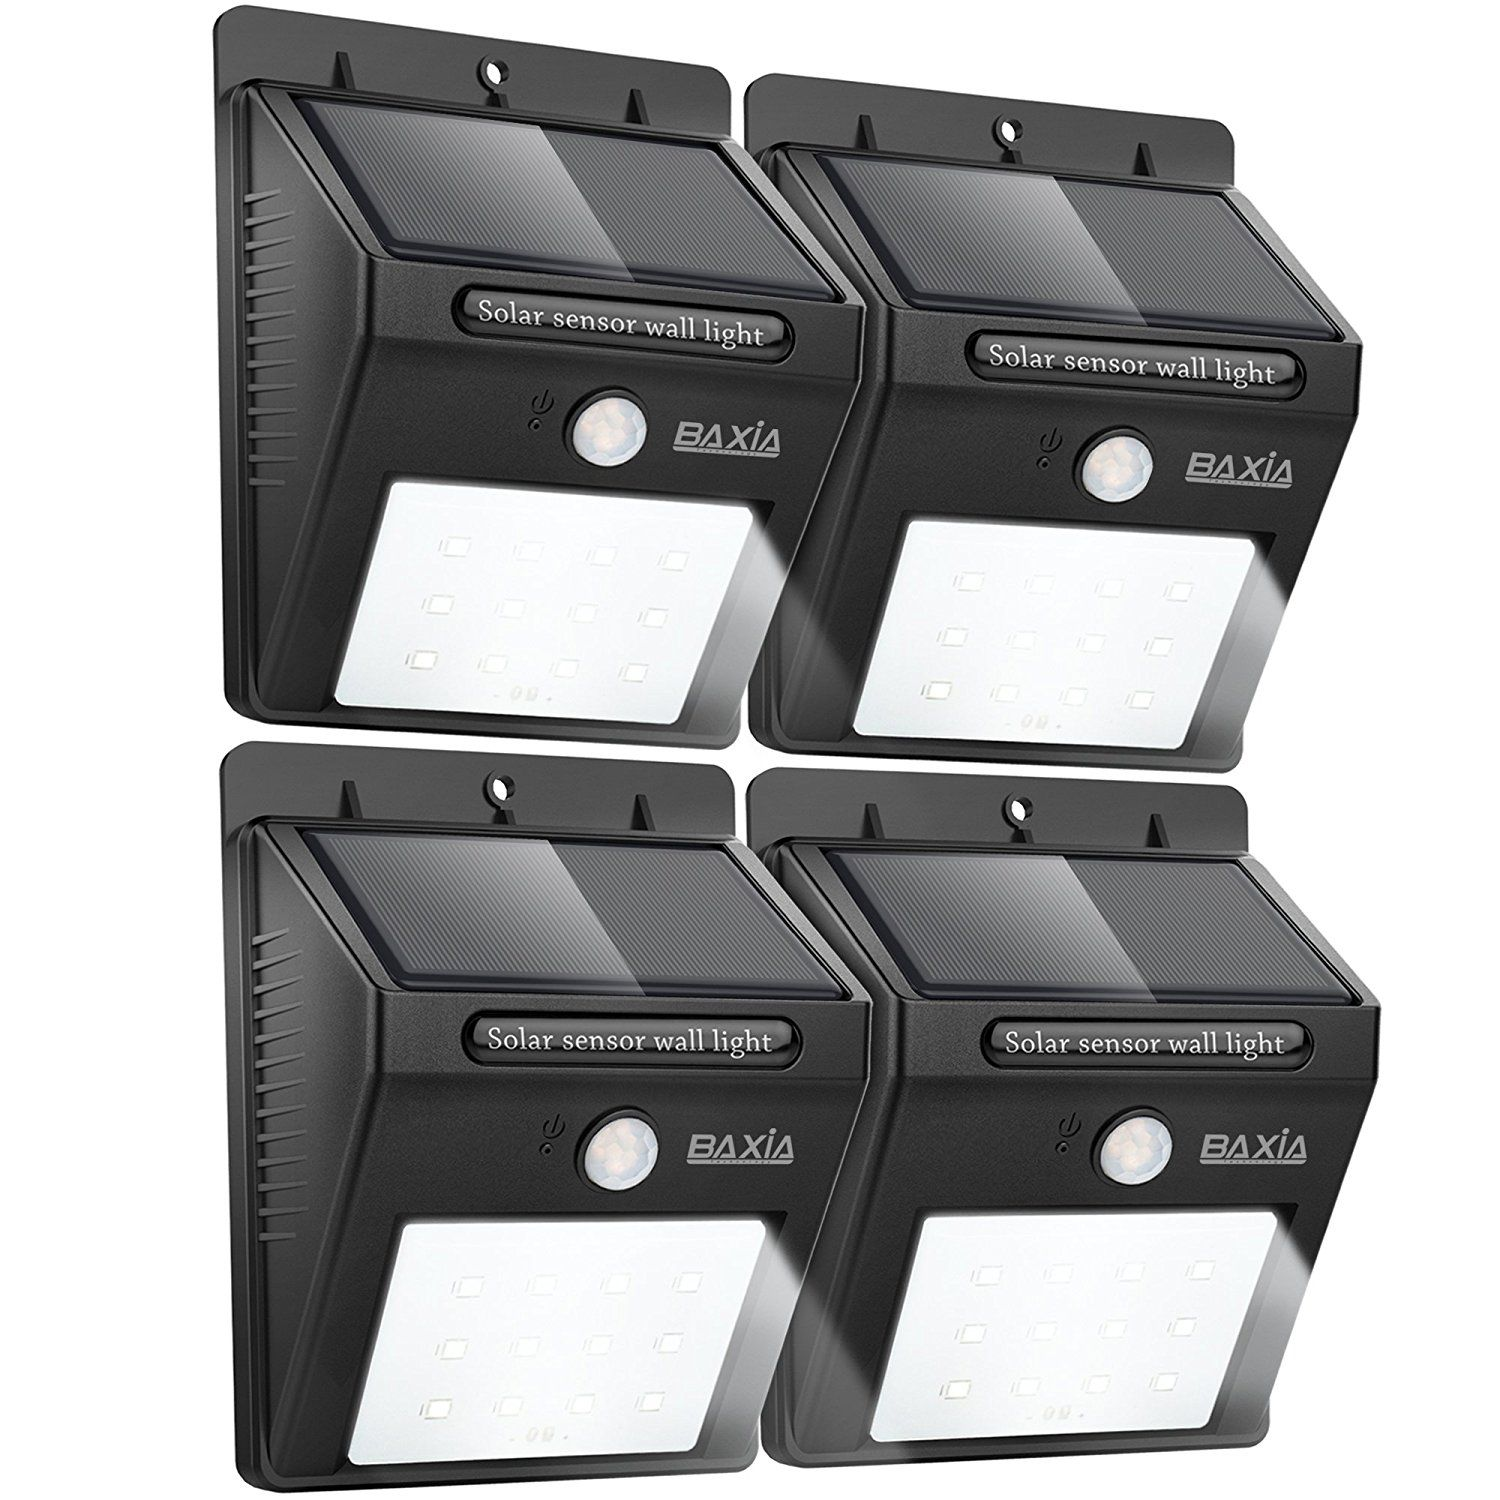 BAXIA TECHNOLOGY Waterproof Solar Motion Sensor Nightlight  - Outdoor Solar Bright Security Lights 12 LEDs Wireless for Wall (4-pack)